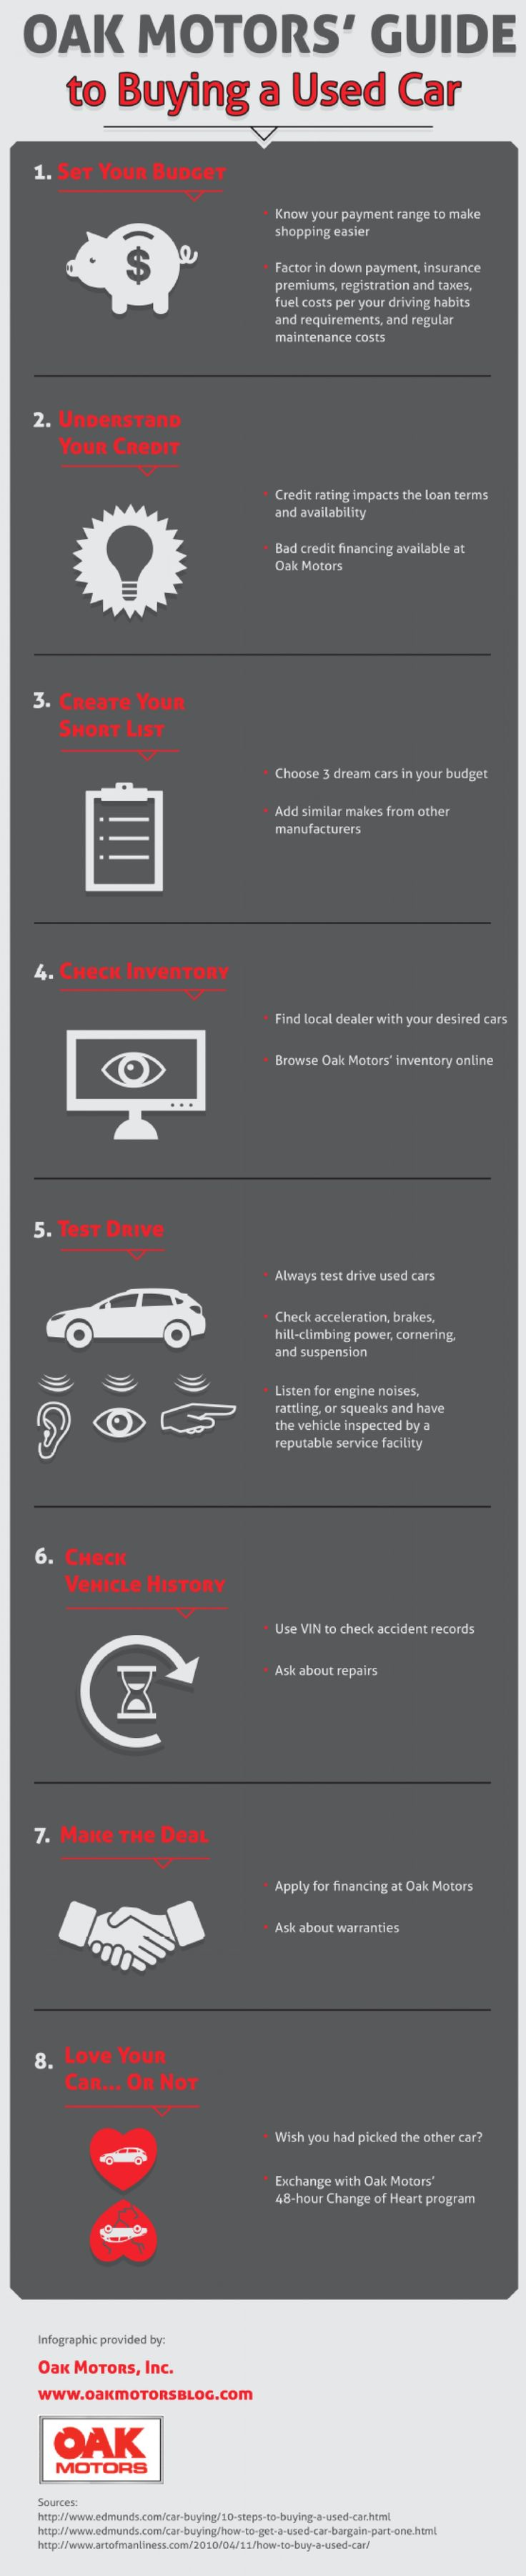 Next add similar makes from other manufacturers to find the best option get more tips on this infographic from an anderson used car dealership